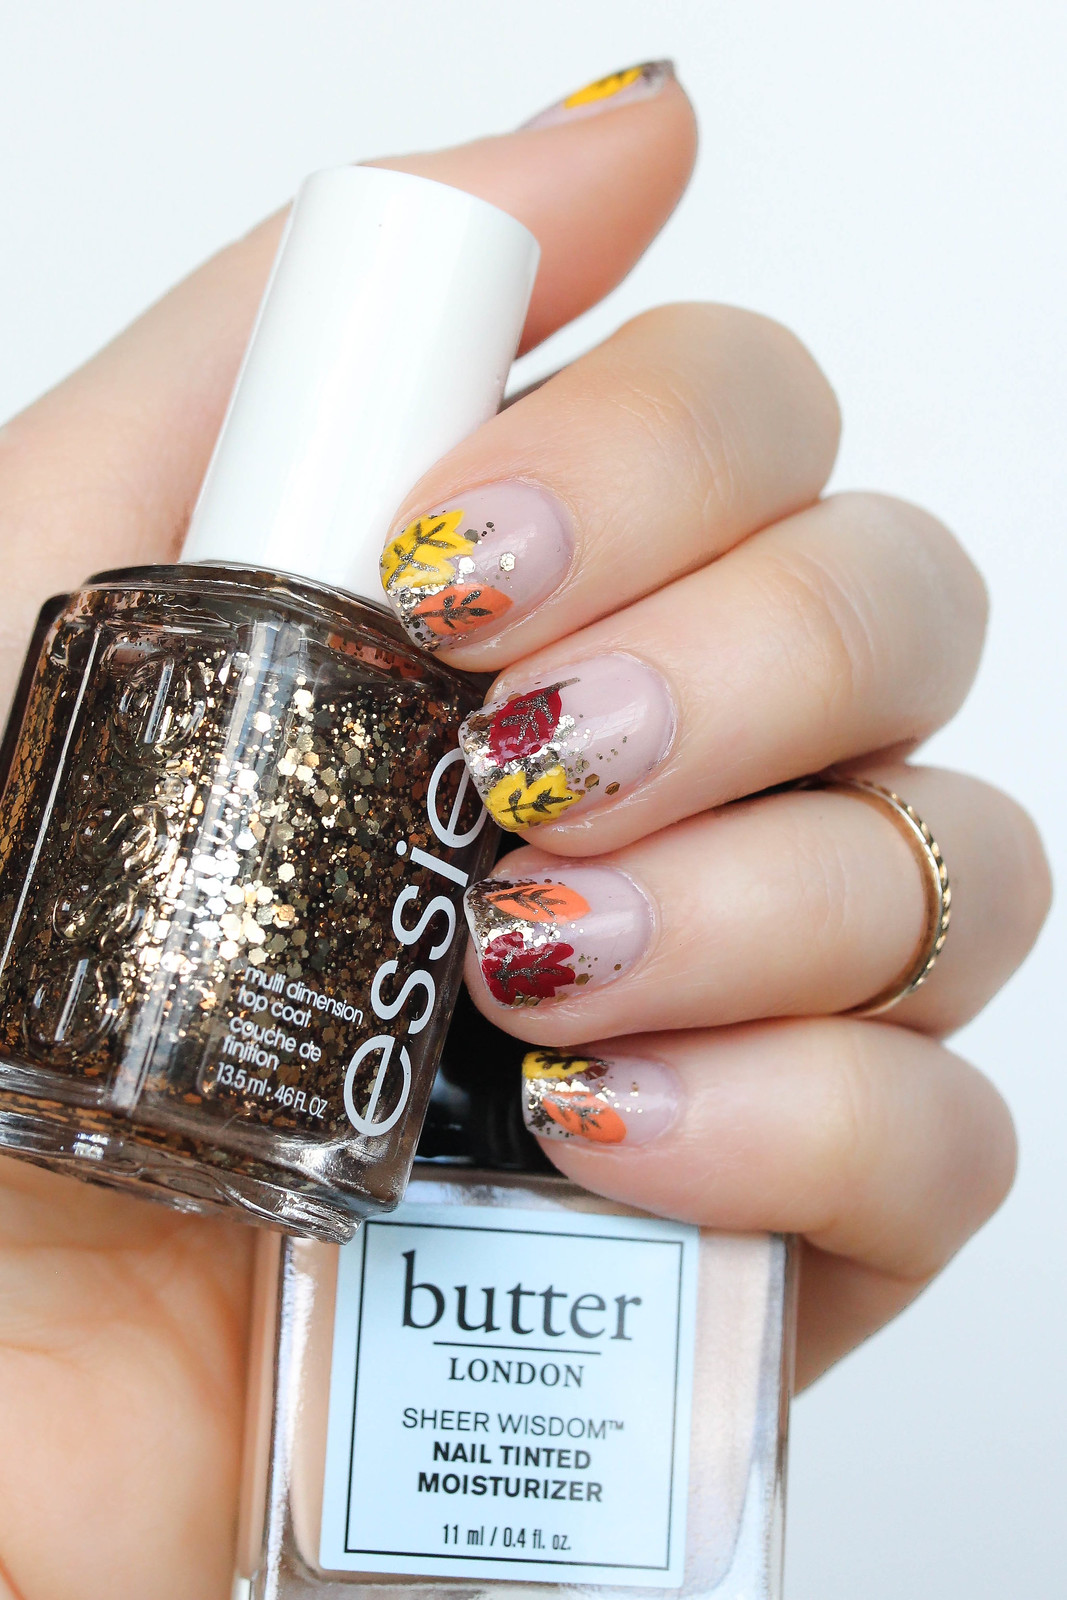 Fall Foliage Manicure Essie Glitter Nail Polish Summit of Style Butter London Sheer Wisdom Nail Tinted Moisturizer Fair